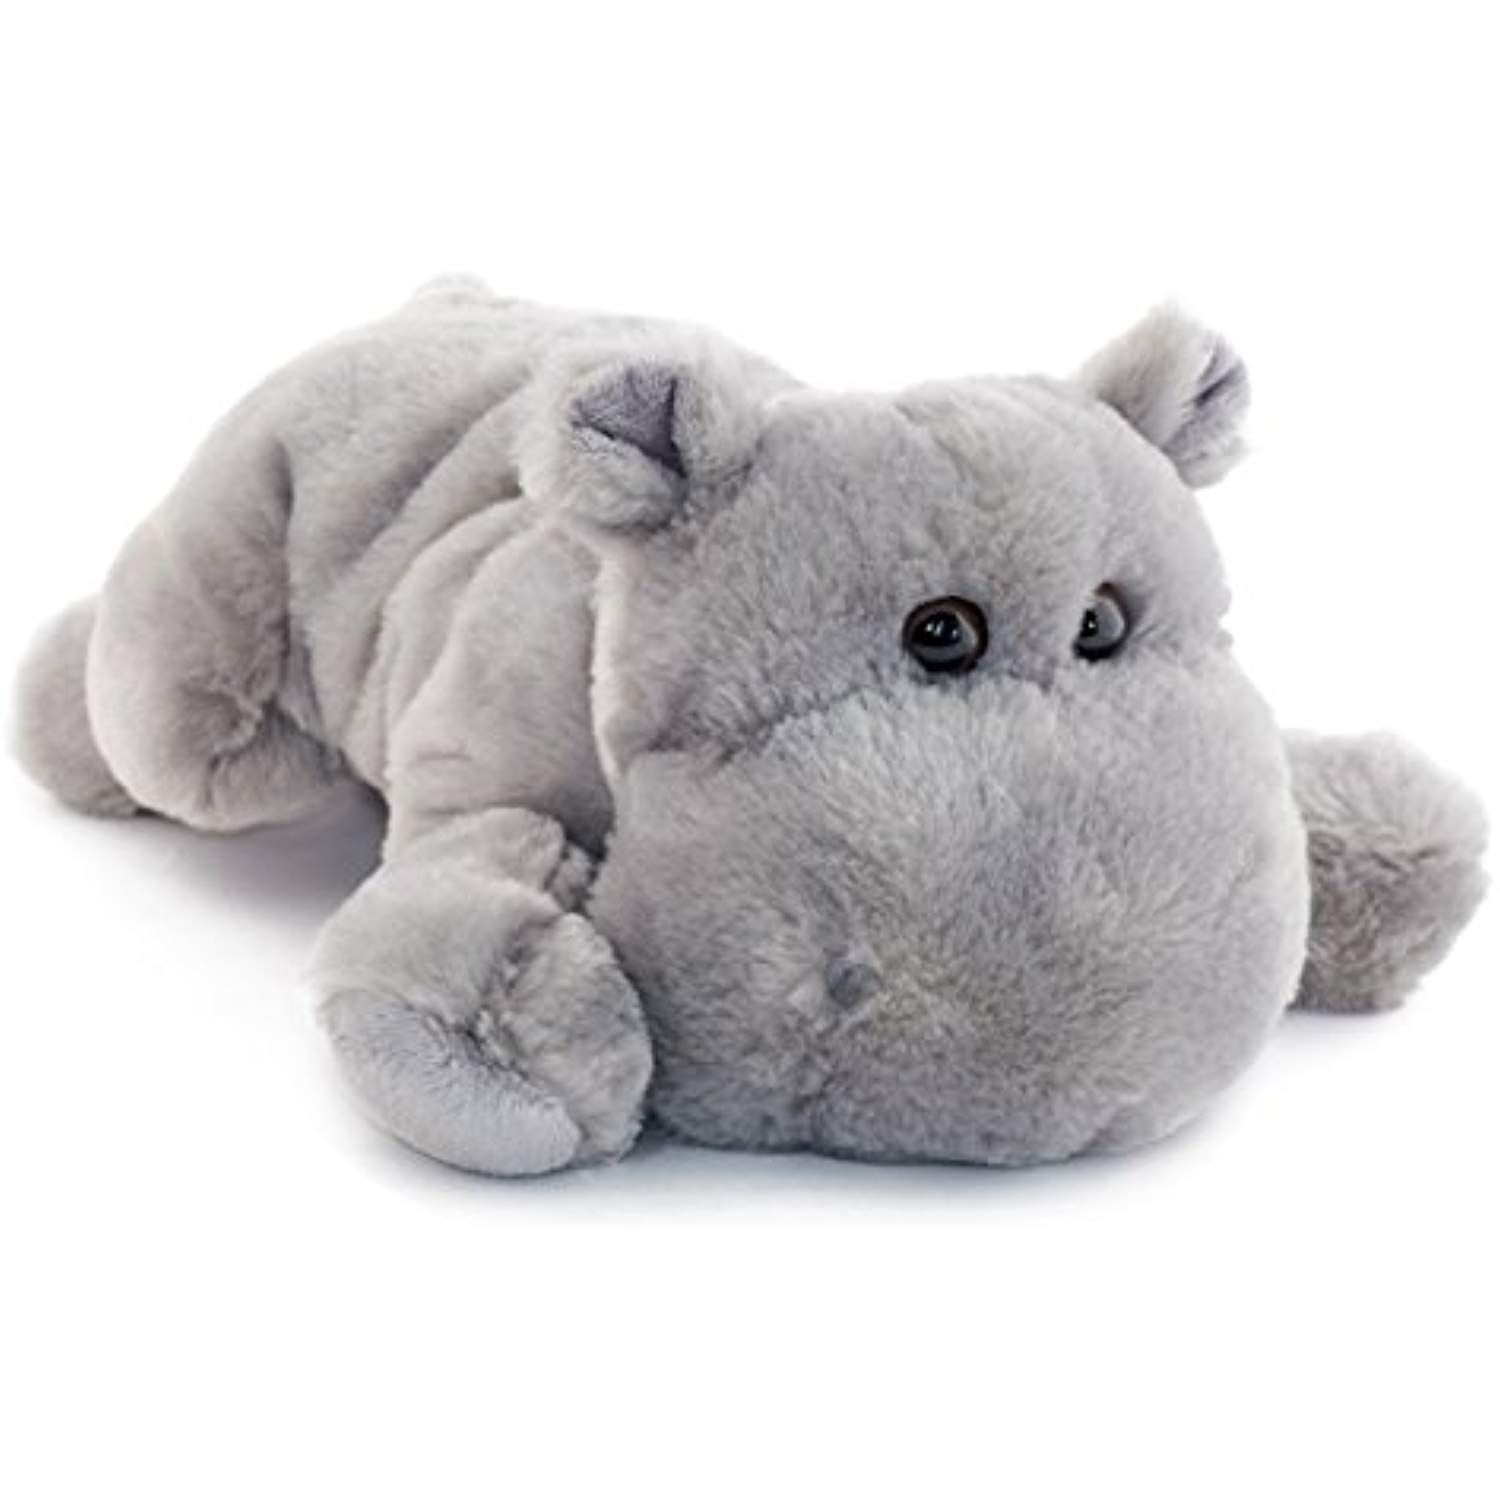 Huck The Hippo 12 Inch Stuffed Animal Plush By Tiger Tale Toys Learn More By Visiting The Image Lin Animal Plush Toys Teddy Bear Stuffed Animal Animals